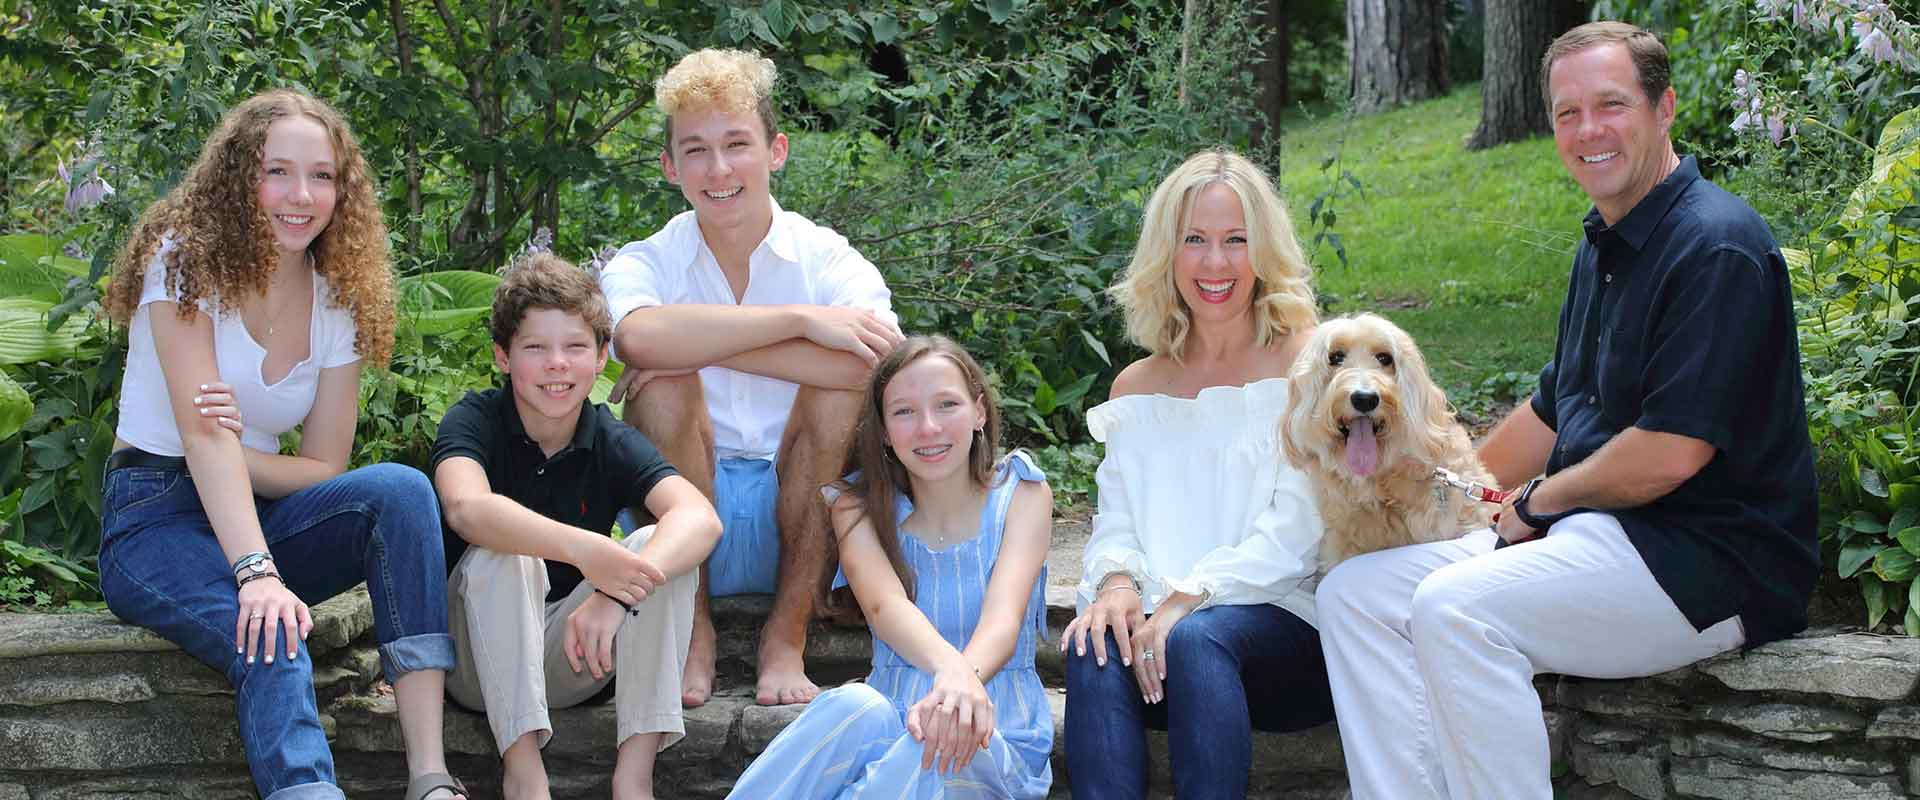 Learning to Just Breathe – Helping Parents Navigate the LGBTQ Journey with Their Child